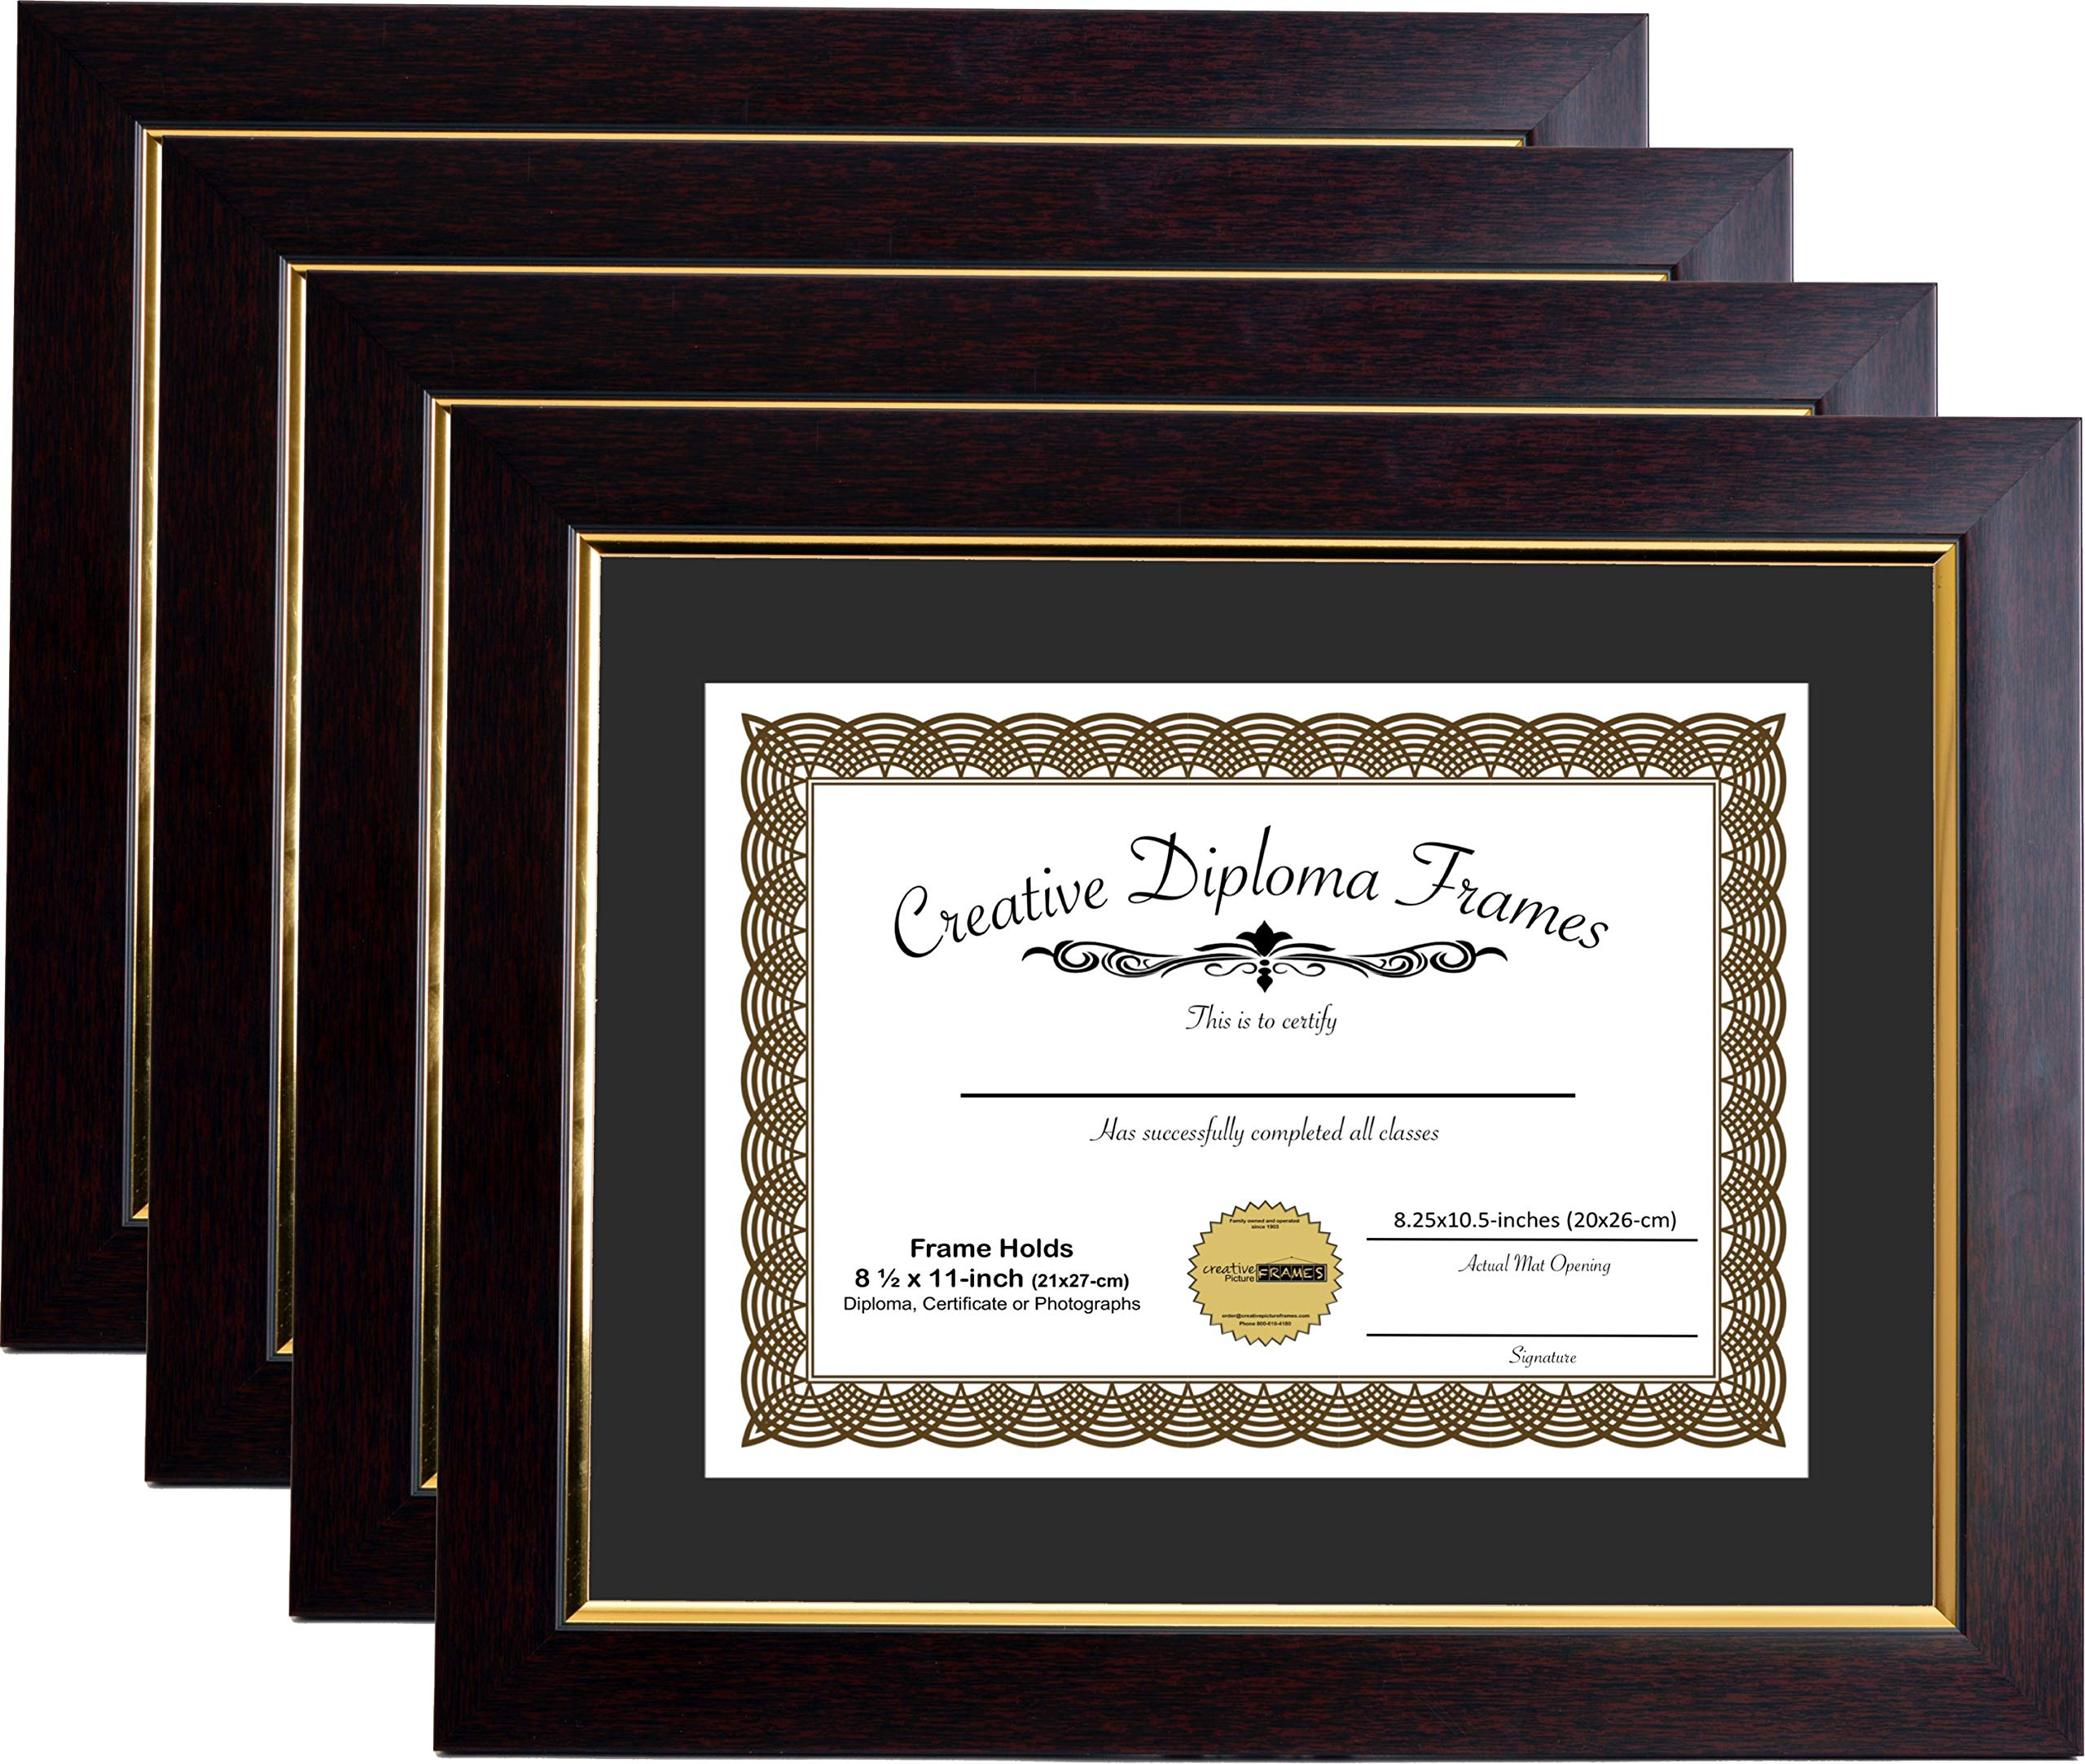 CreativePF [mhg024] 11x14-inch Matted Eco Mahogany Diploma Frame Gold Lip with Black/White Core Mat Holds 8.5x11-inch Media, with Installed Hangers (4-Pack)